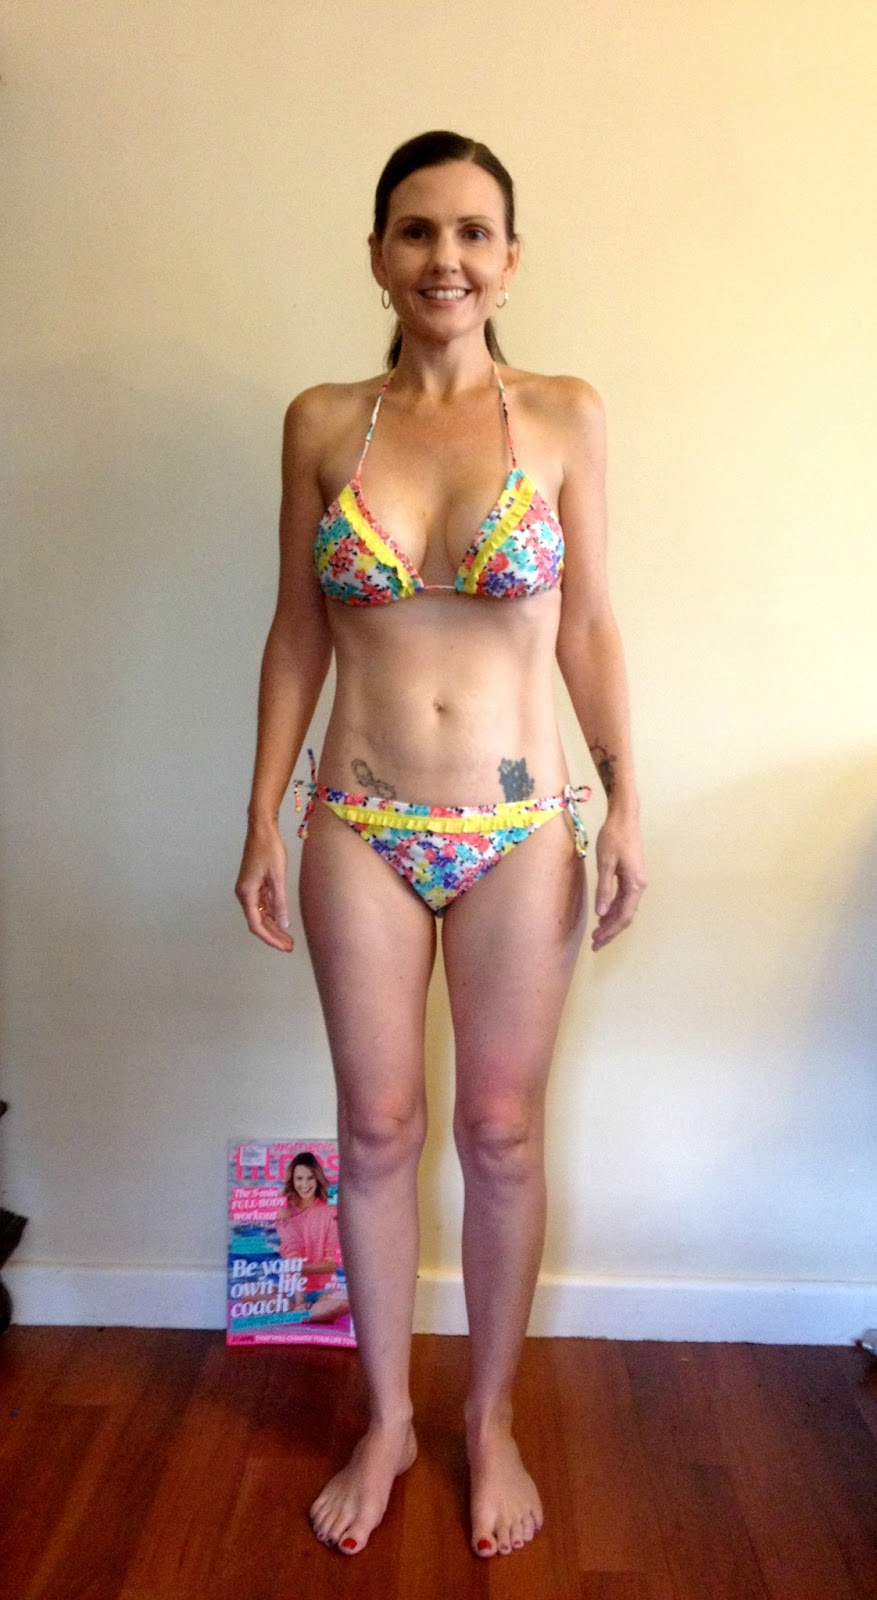 Fitness Inspiration Before After Images & Pictures - Becuo